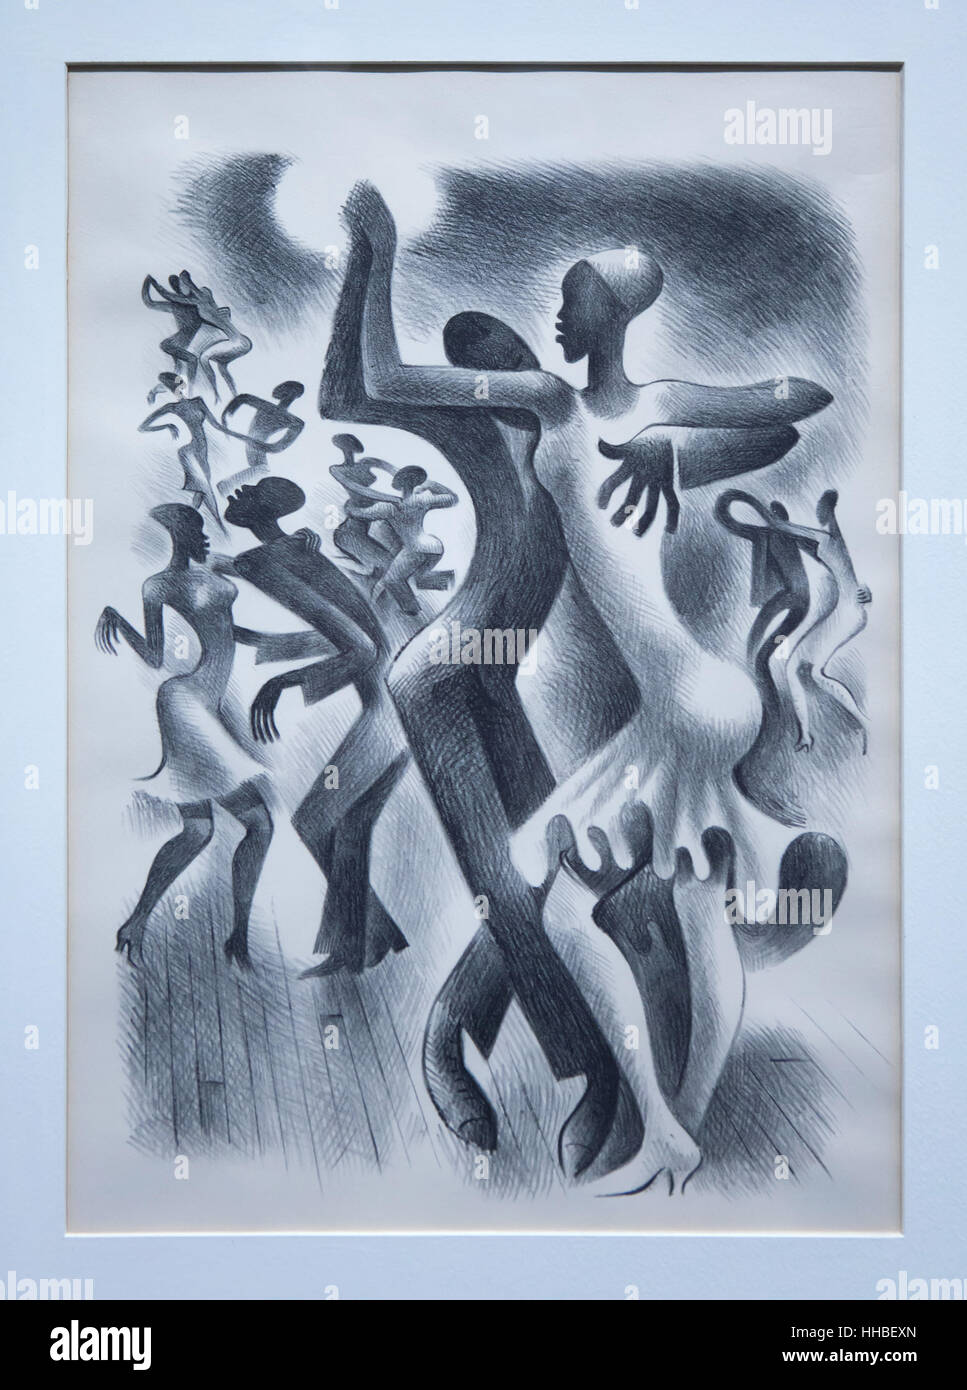 Drawing Harlem (1939) by Mexican caricaturist Miguel Covarrubias for Vanity Fair Magazine displayed at the exhibition - Stock Image